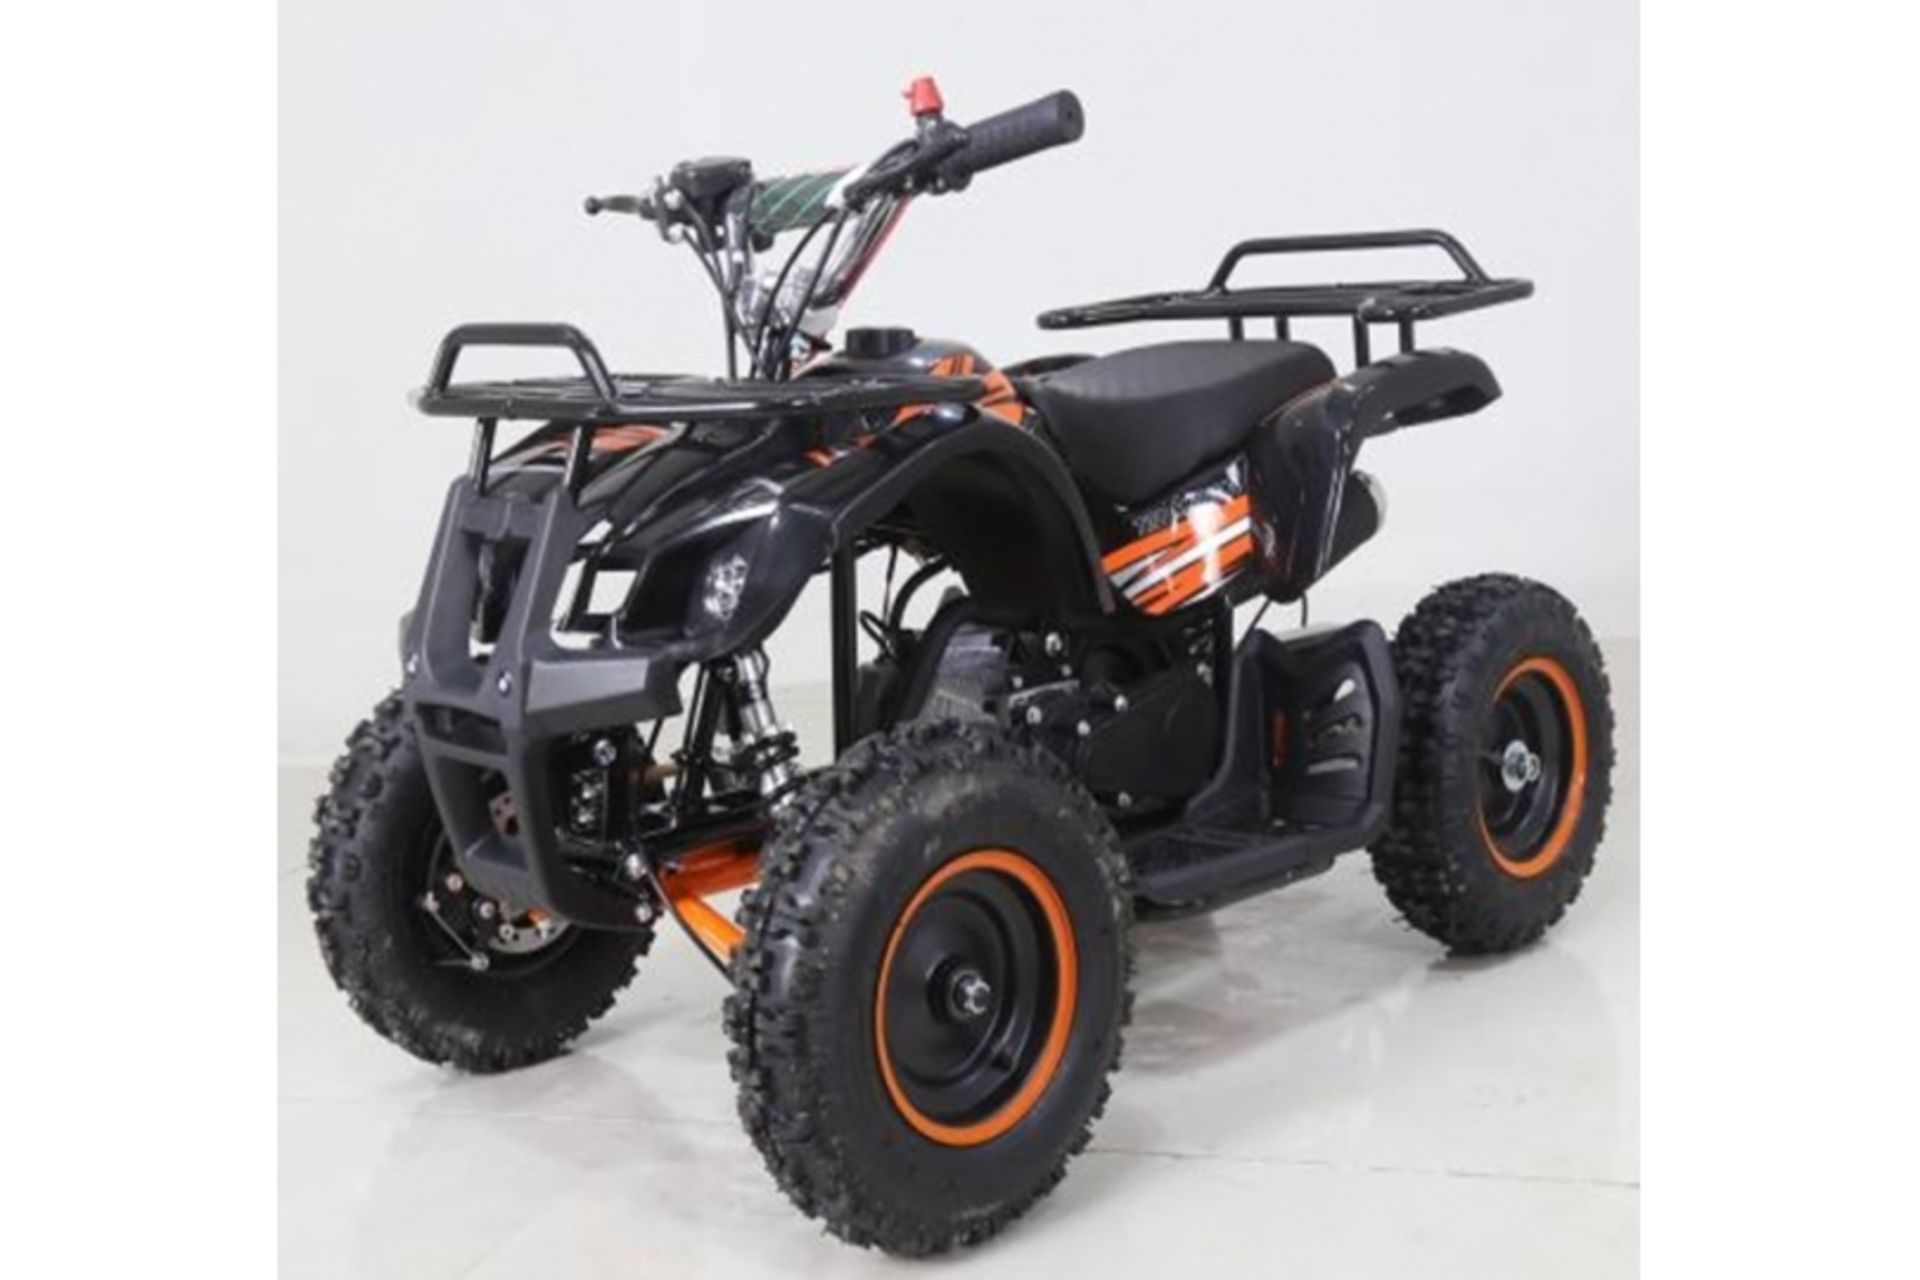 Lot 31899 - + VAT Brand New 50cc Mini Quad Bike FRM - Colours May Vary - Available Approx 7 Working Days After